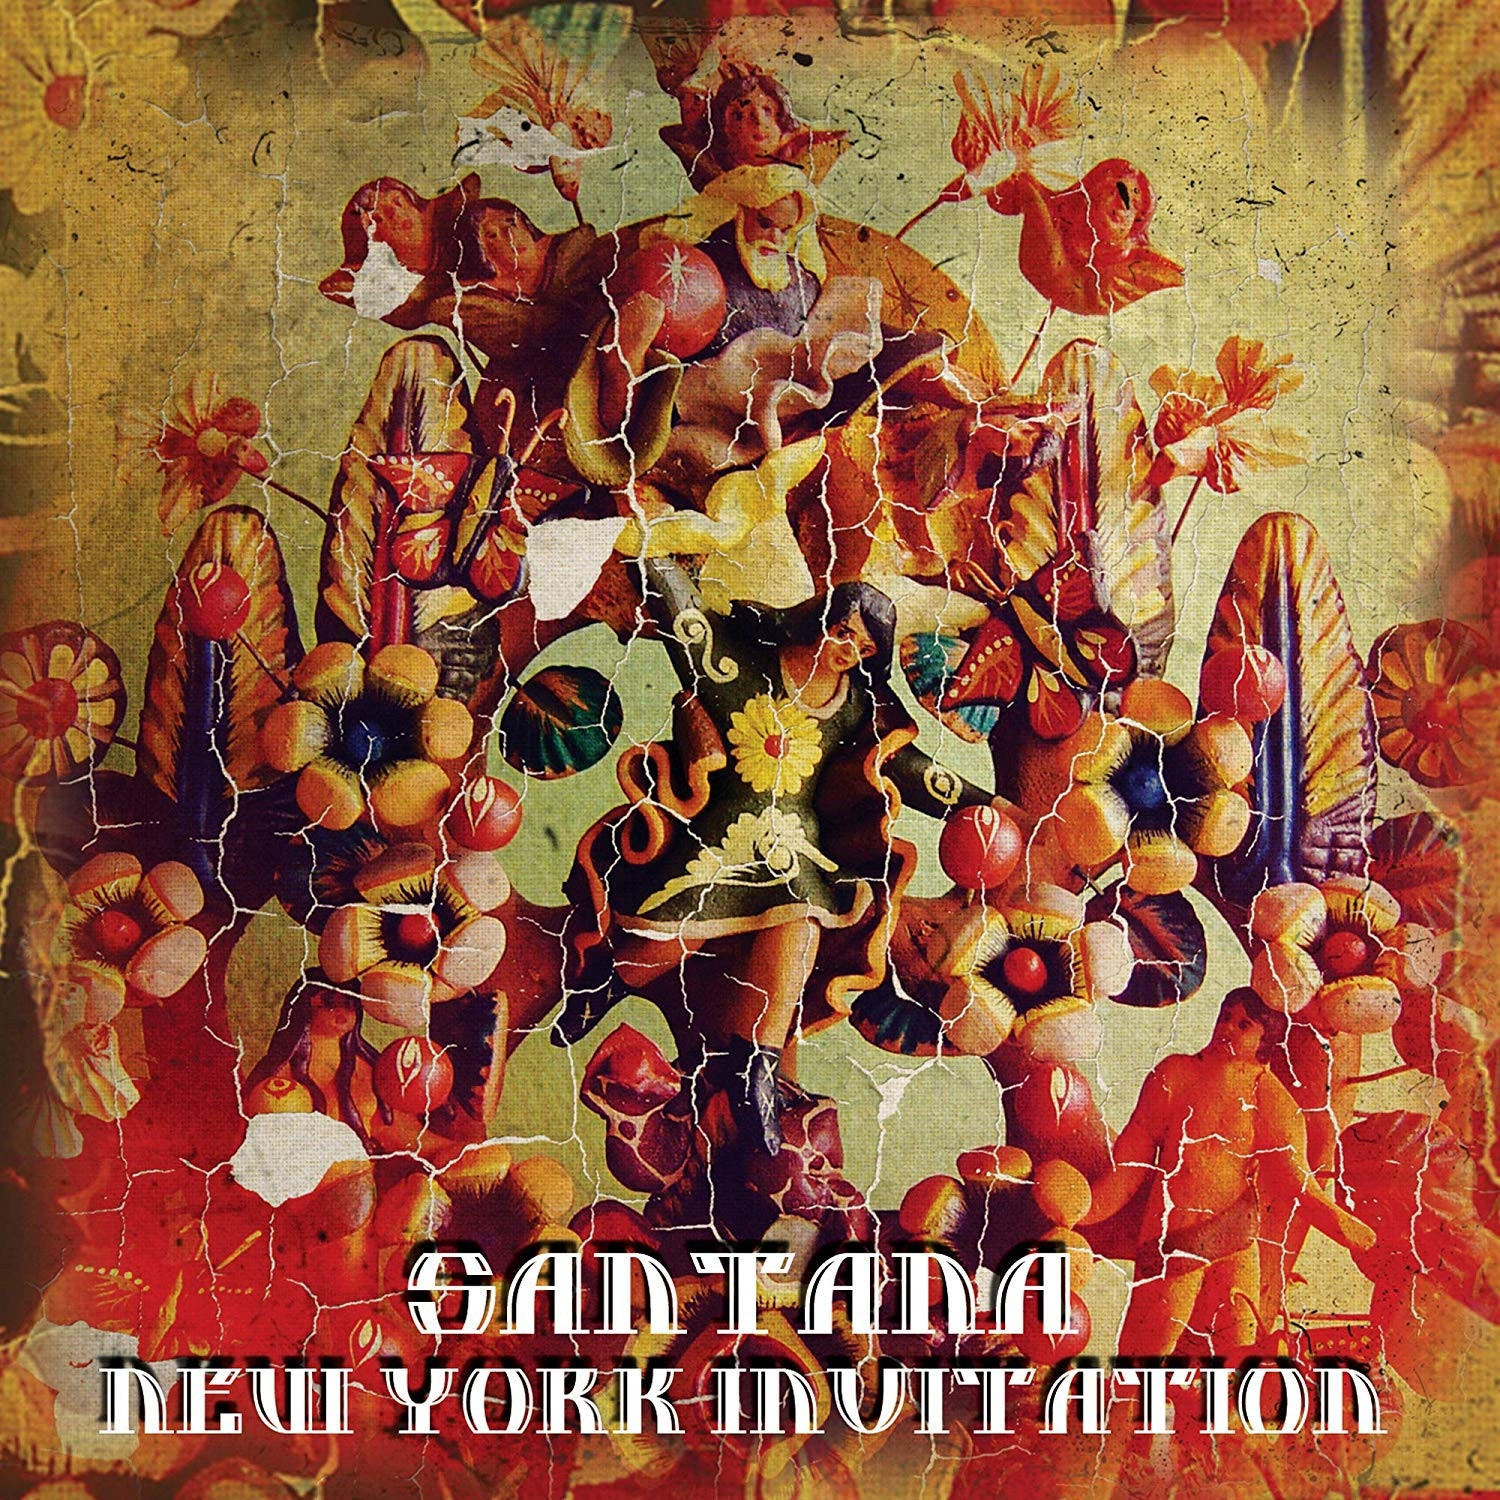 New York Invitation: Live At The Bottom Line 16th October 1978 (2CD)